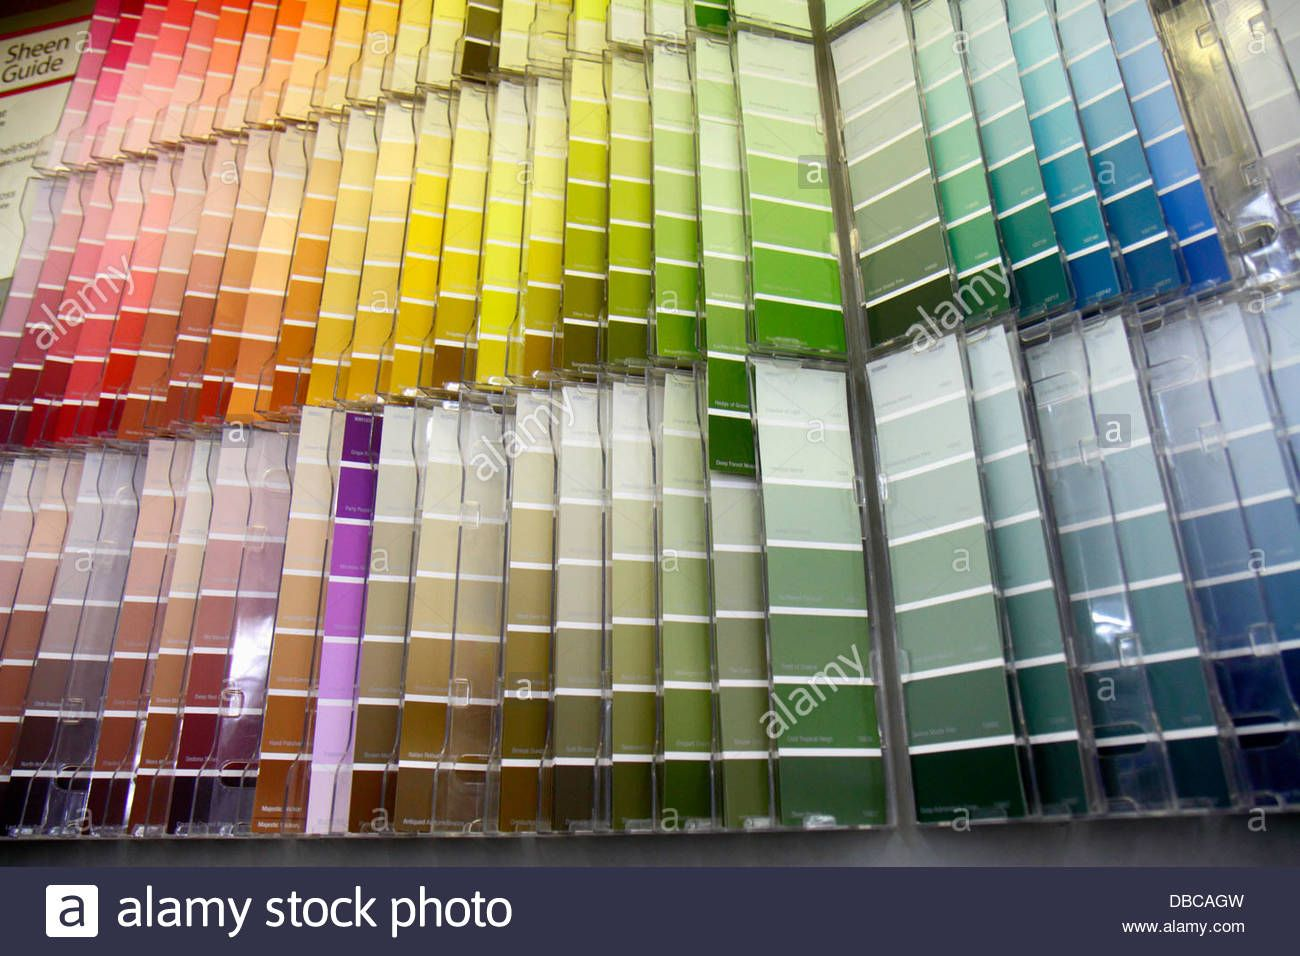 Florida hallandale beach walmart wal mart retail display sale paint department color chart stock photo also rh pinterest